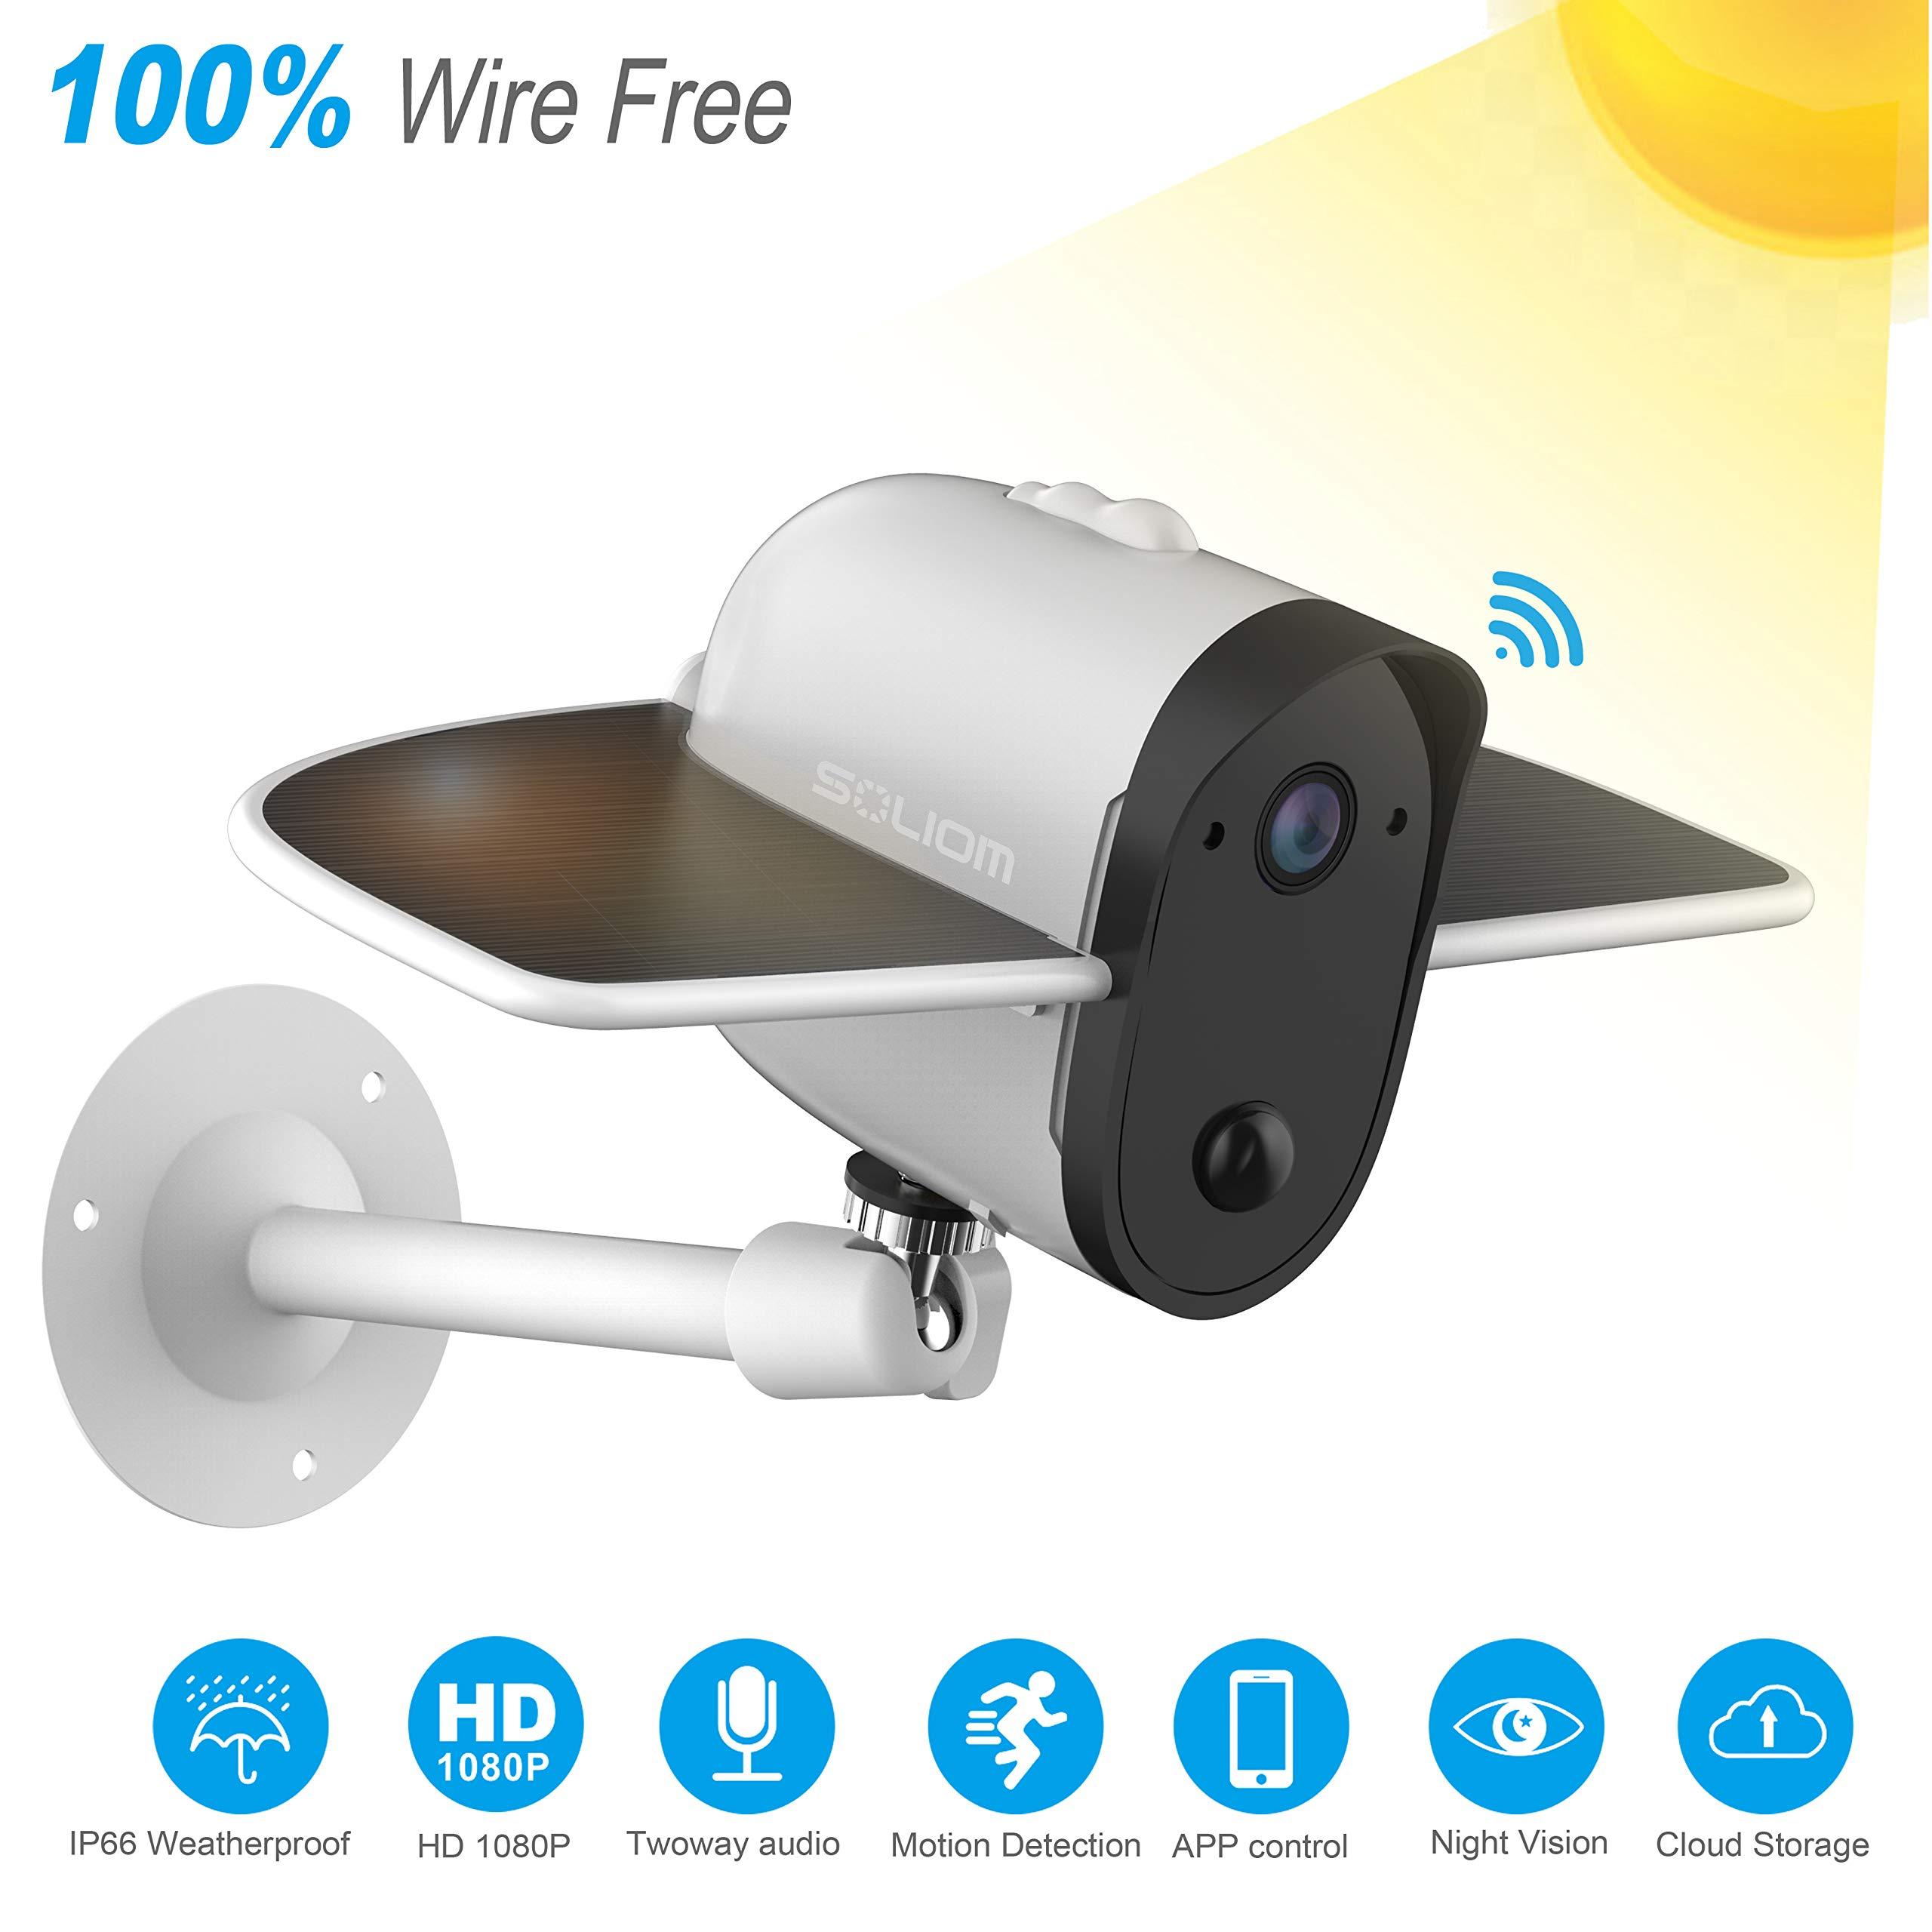 Wireless IP Outdoor Solar Camera, SOLIOM 1080p Wireless Security Camera with Built-in 4000Mah Battery and Solar Panel for Easy Outdoor Surveillance by SOLIOM